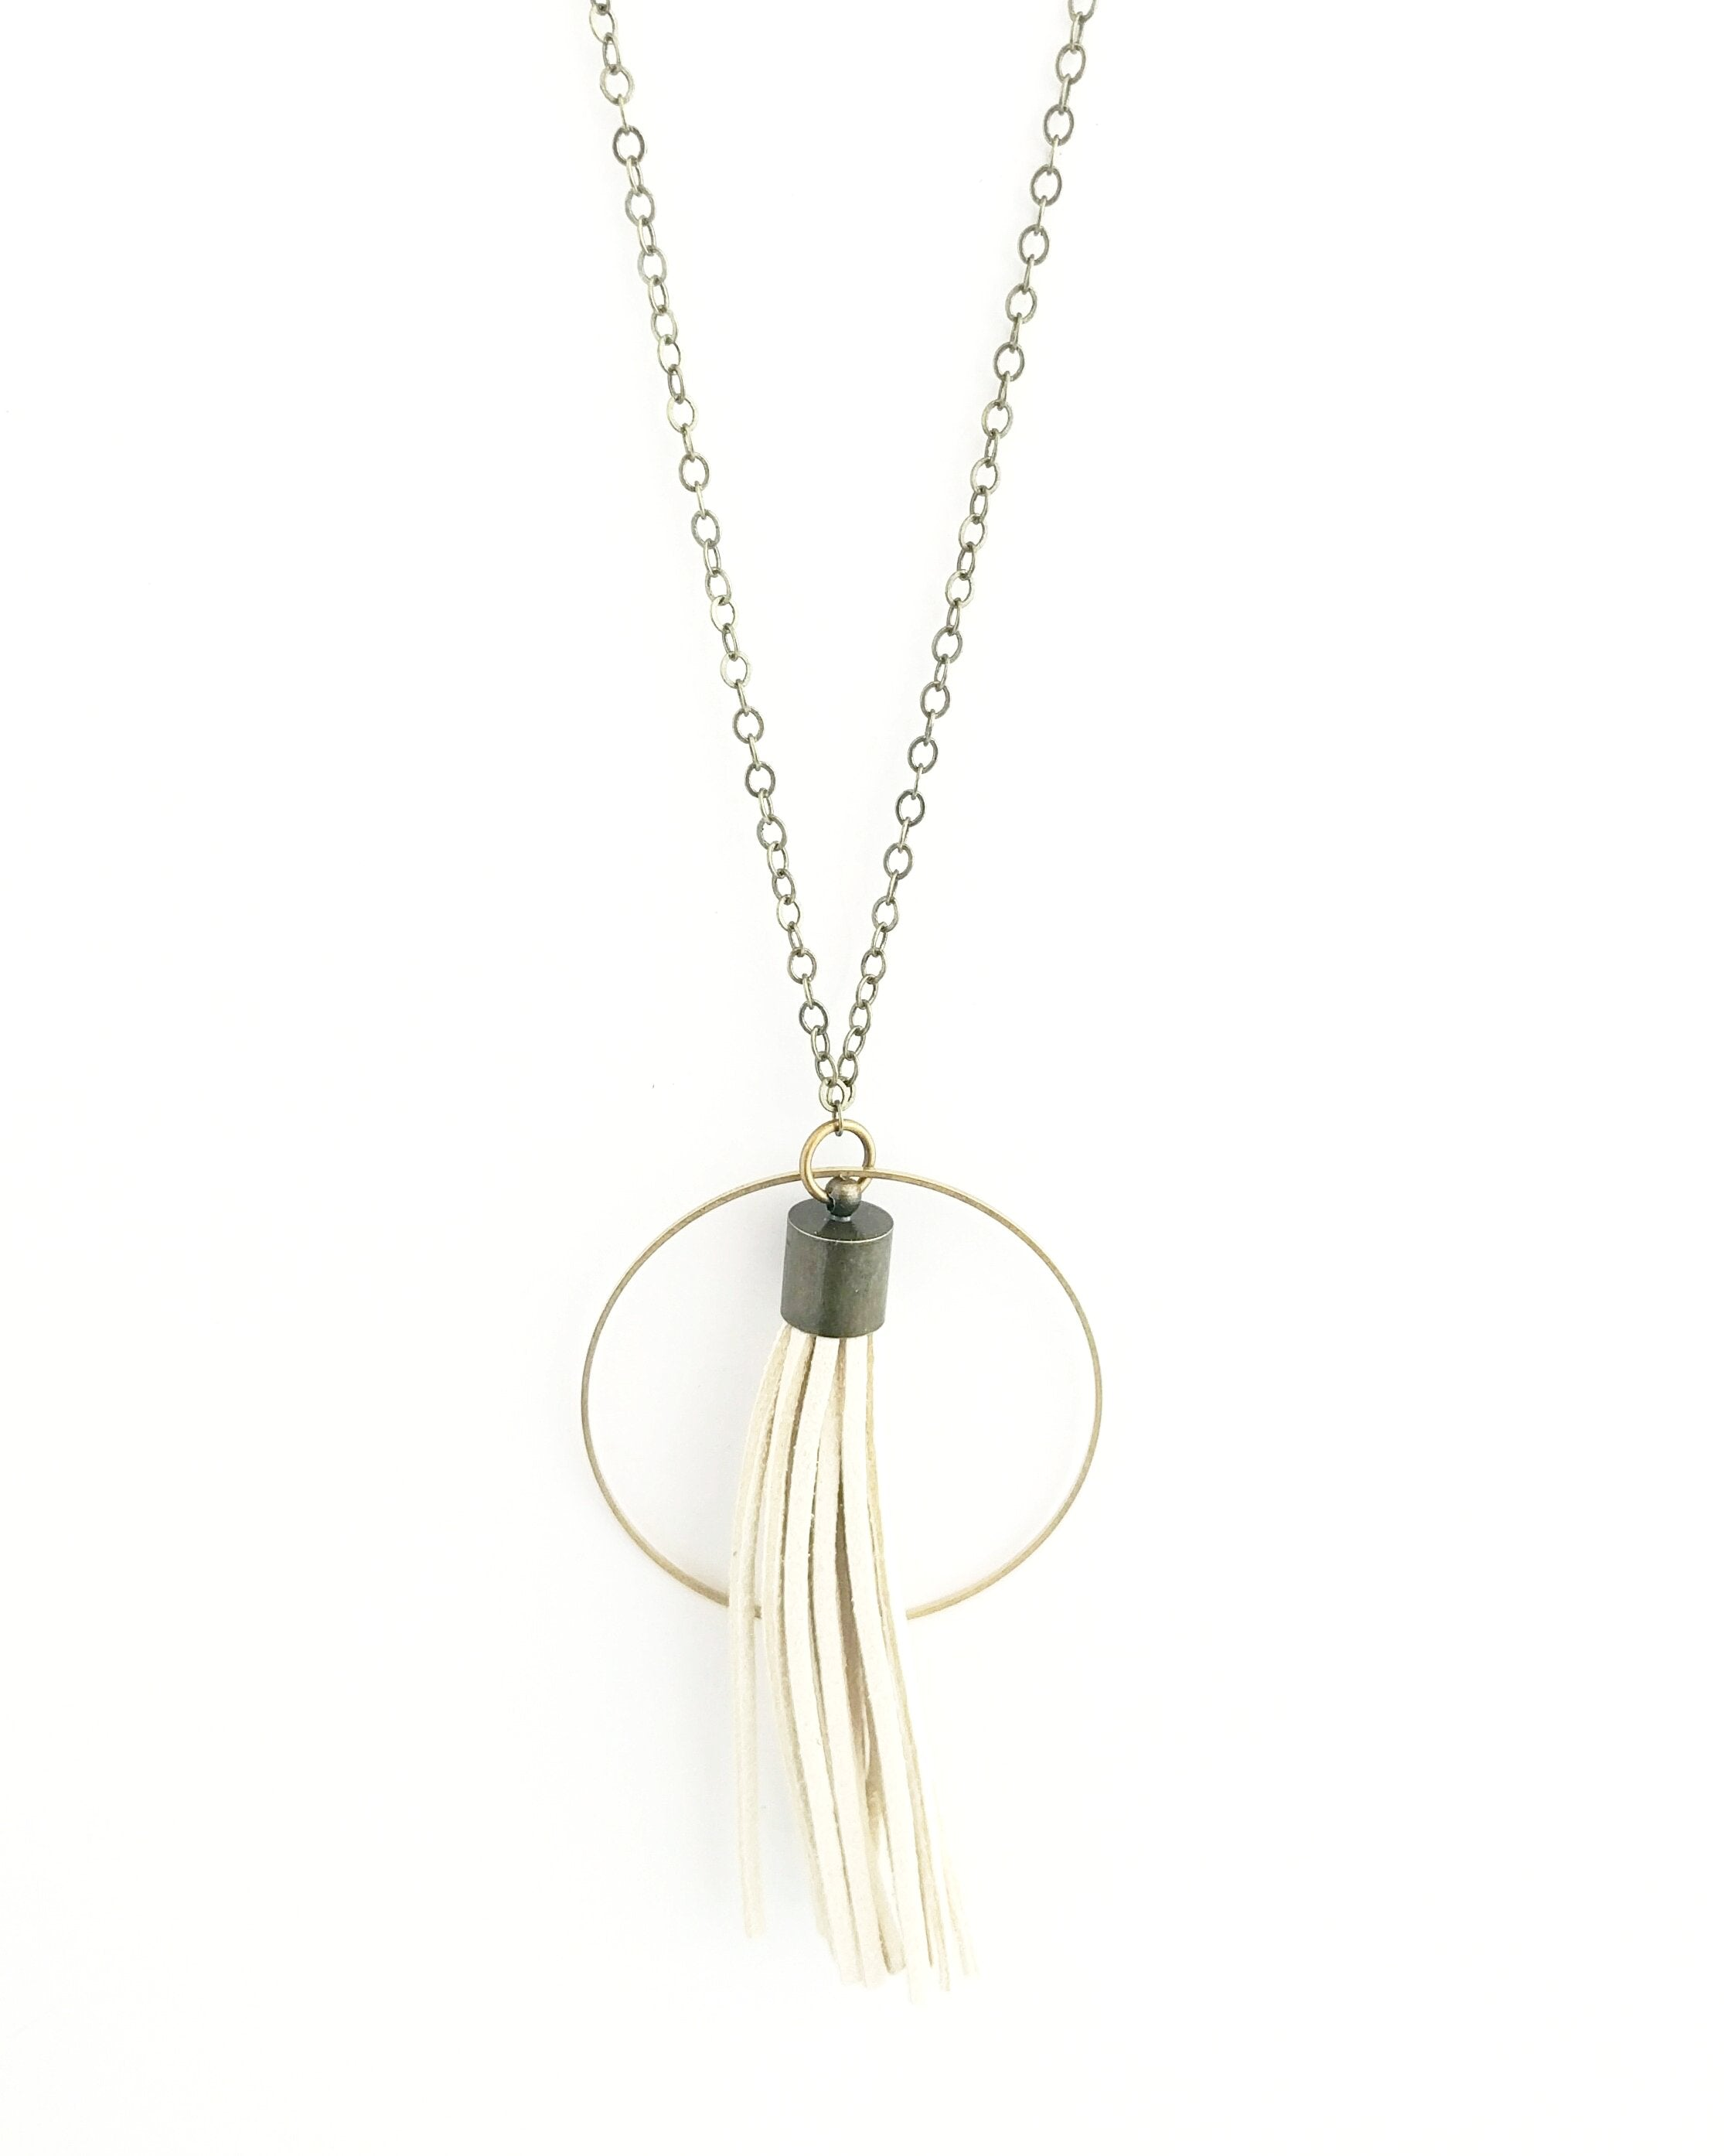 Gwendolyn Necklace || Choose Color